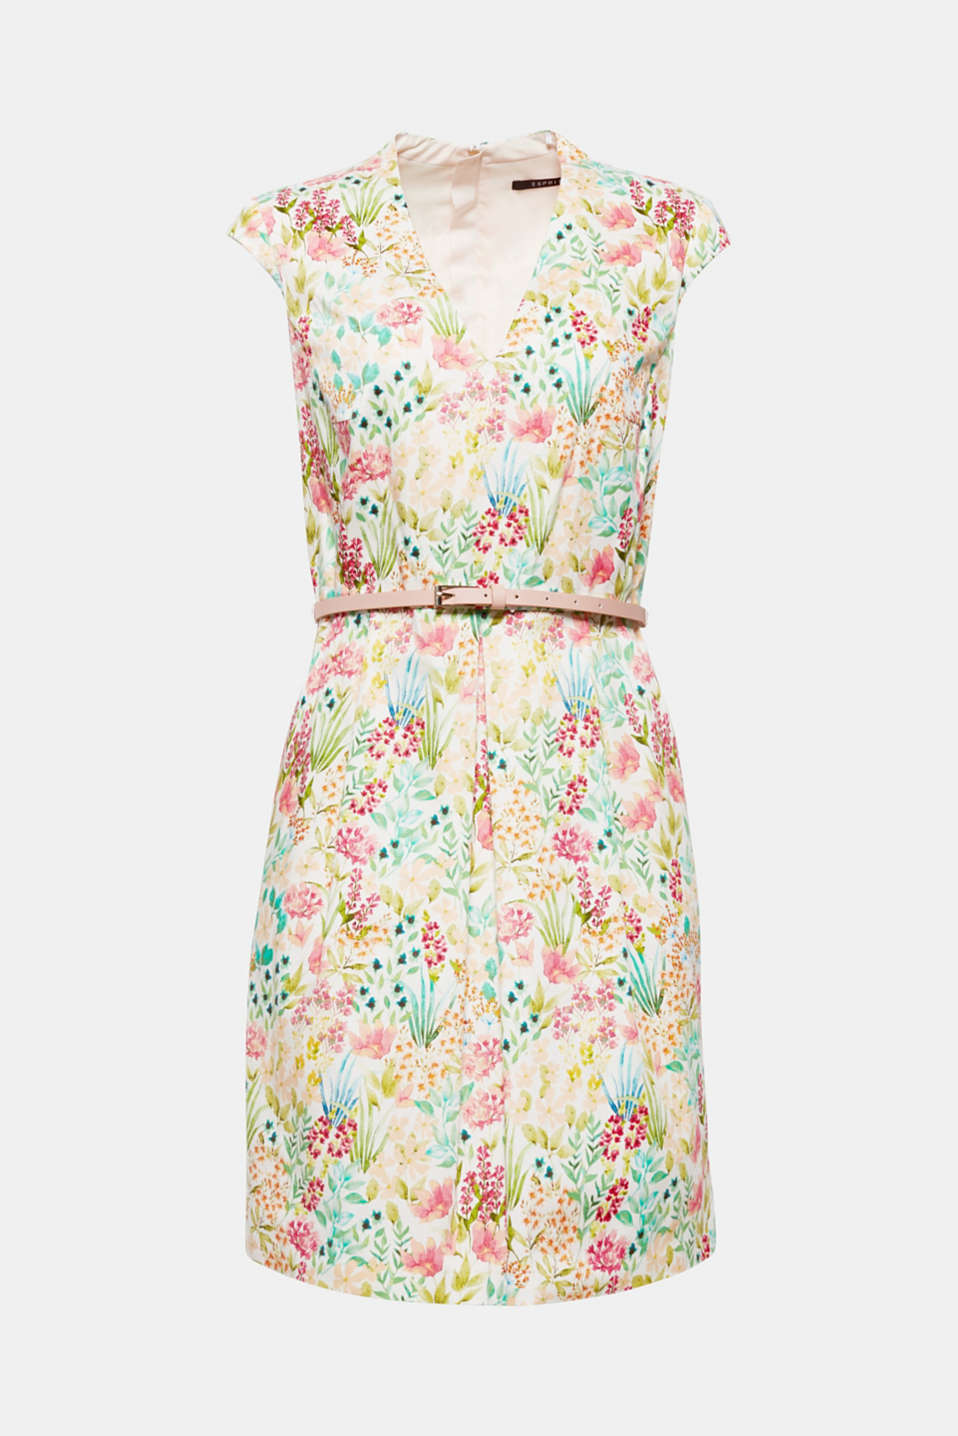 Colourful flowers on smooth satin make this feminine dress with a belt and pleated skirt a favourite piece for a day in the city or special occasions!